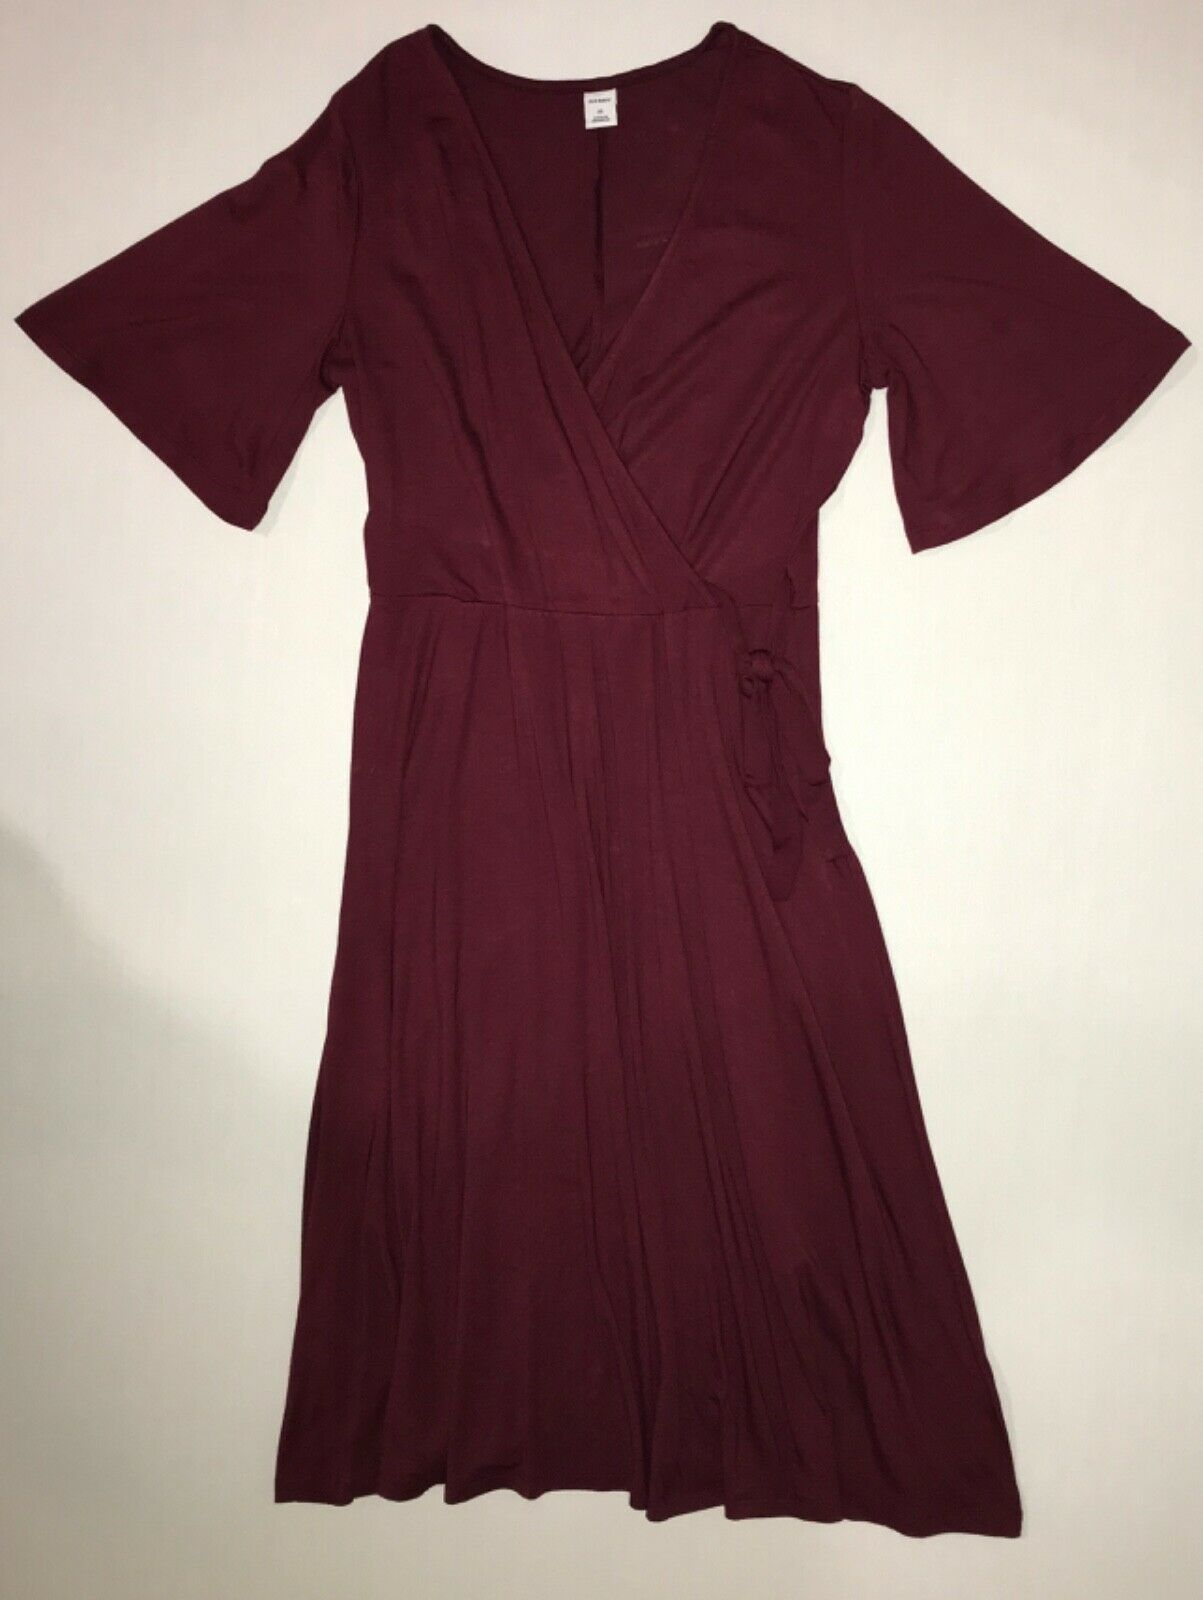 Primary image for Old Navy Waist-Defined Bell-Sleeve Faux-Wrap Dress for Women in XS